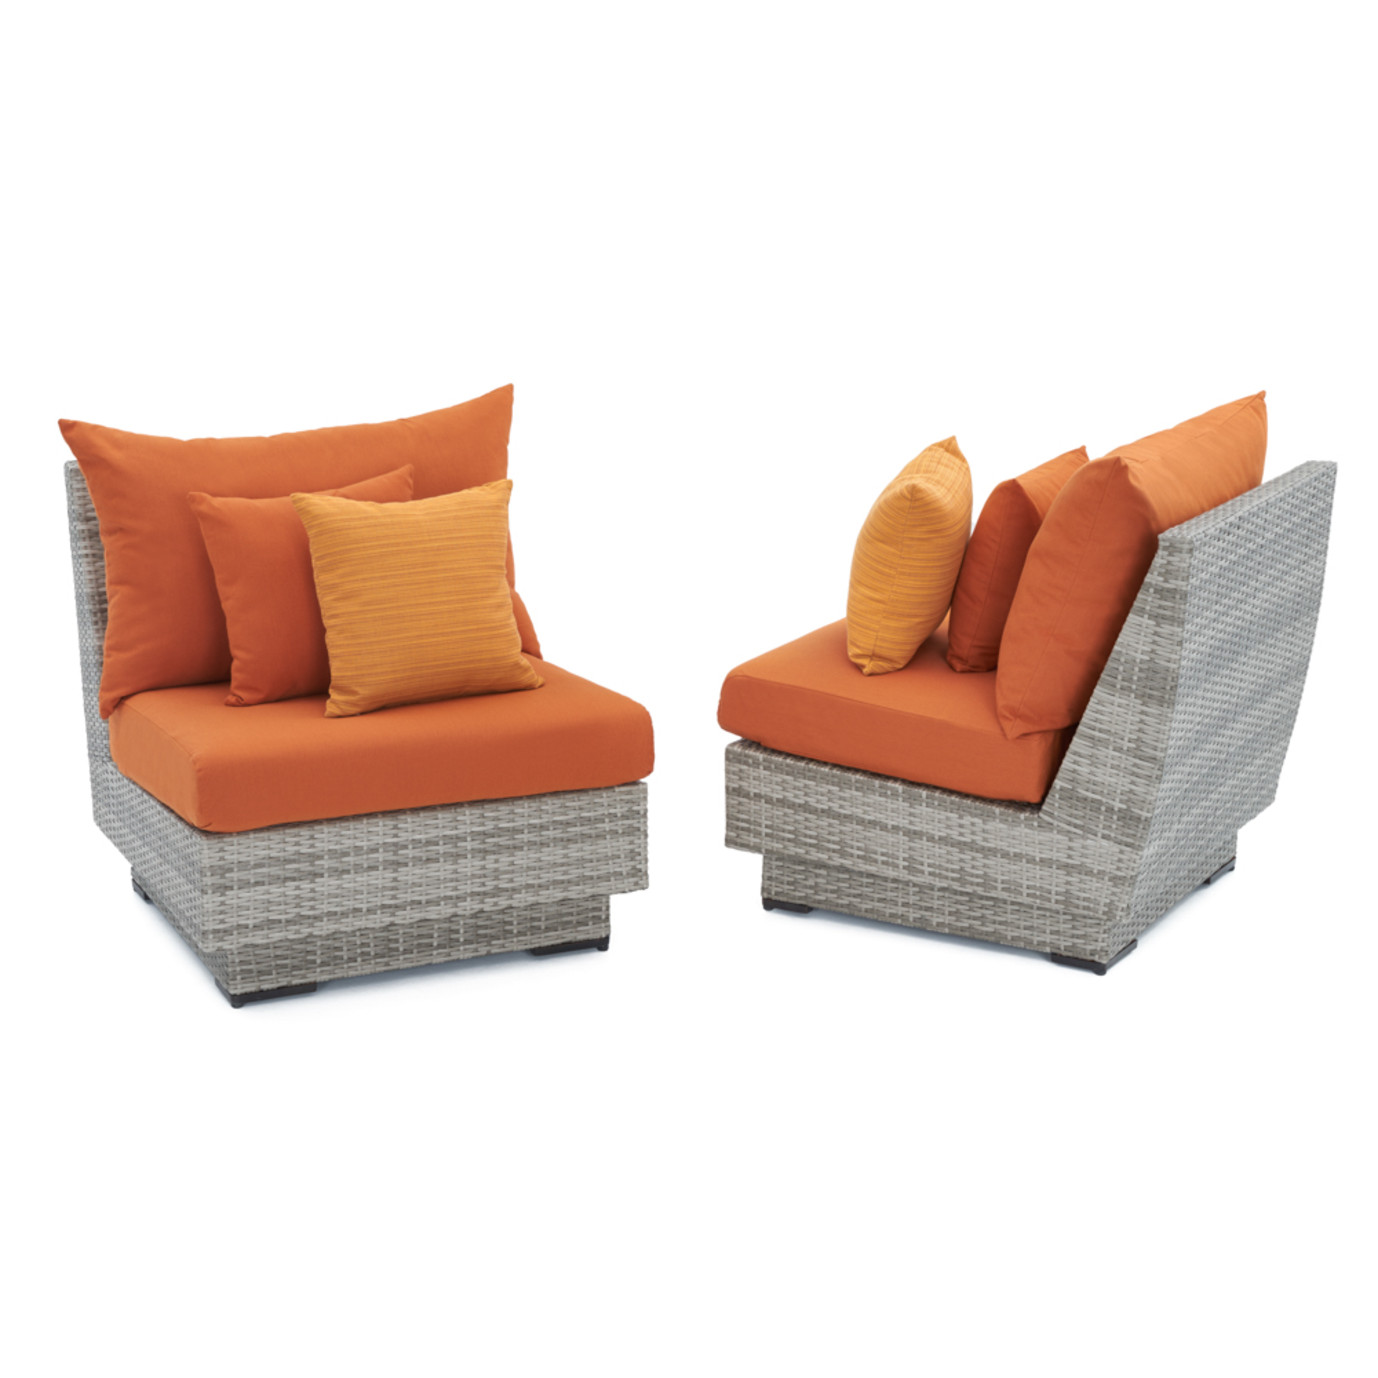 Cannes™ Armless Chairs - Tikka Orange